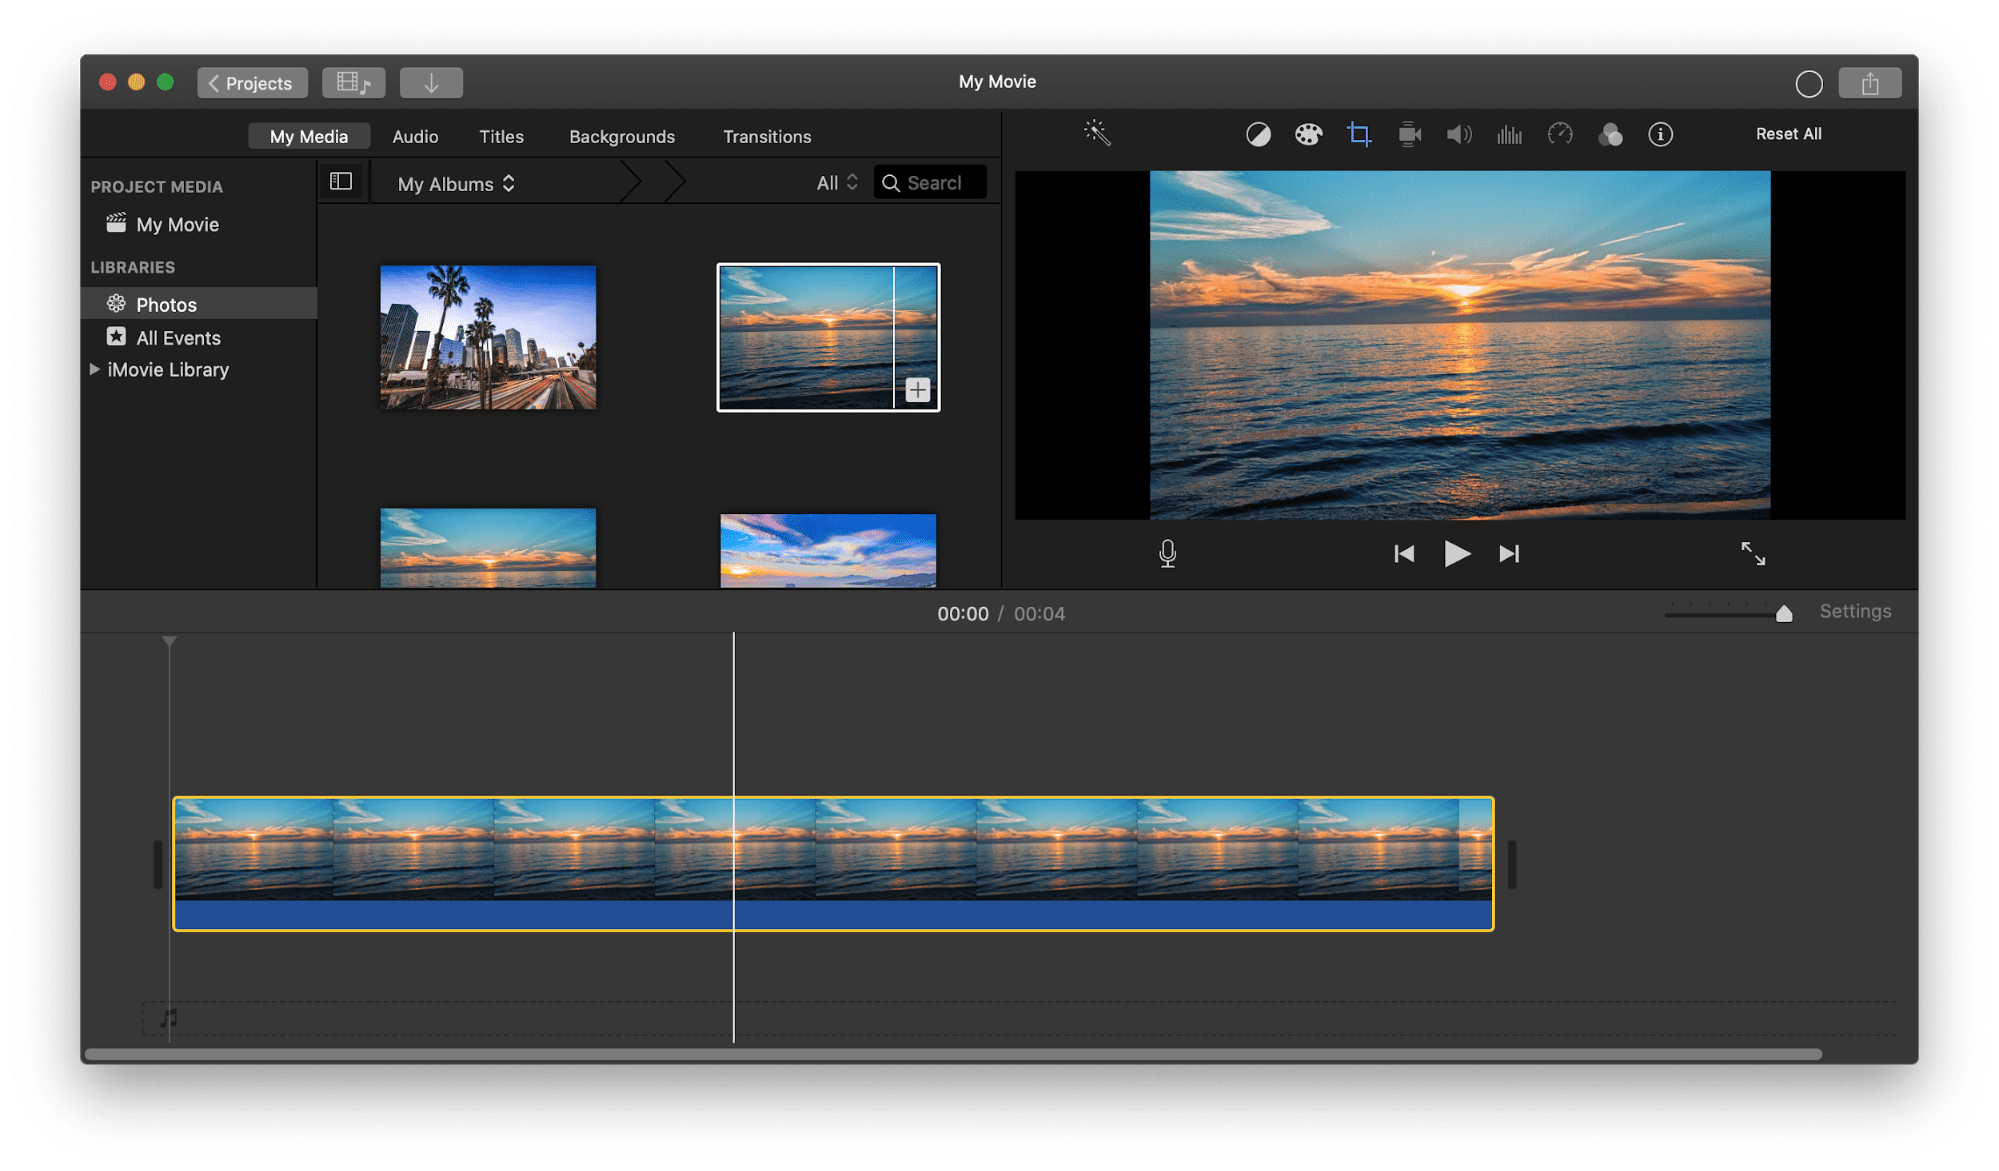 iMovie application window